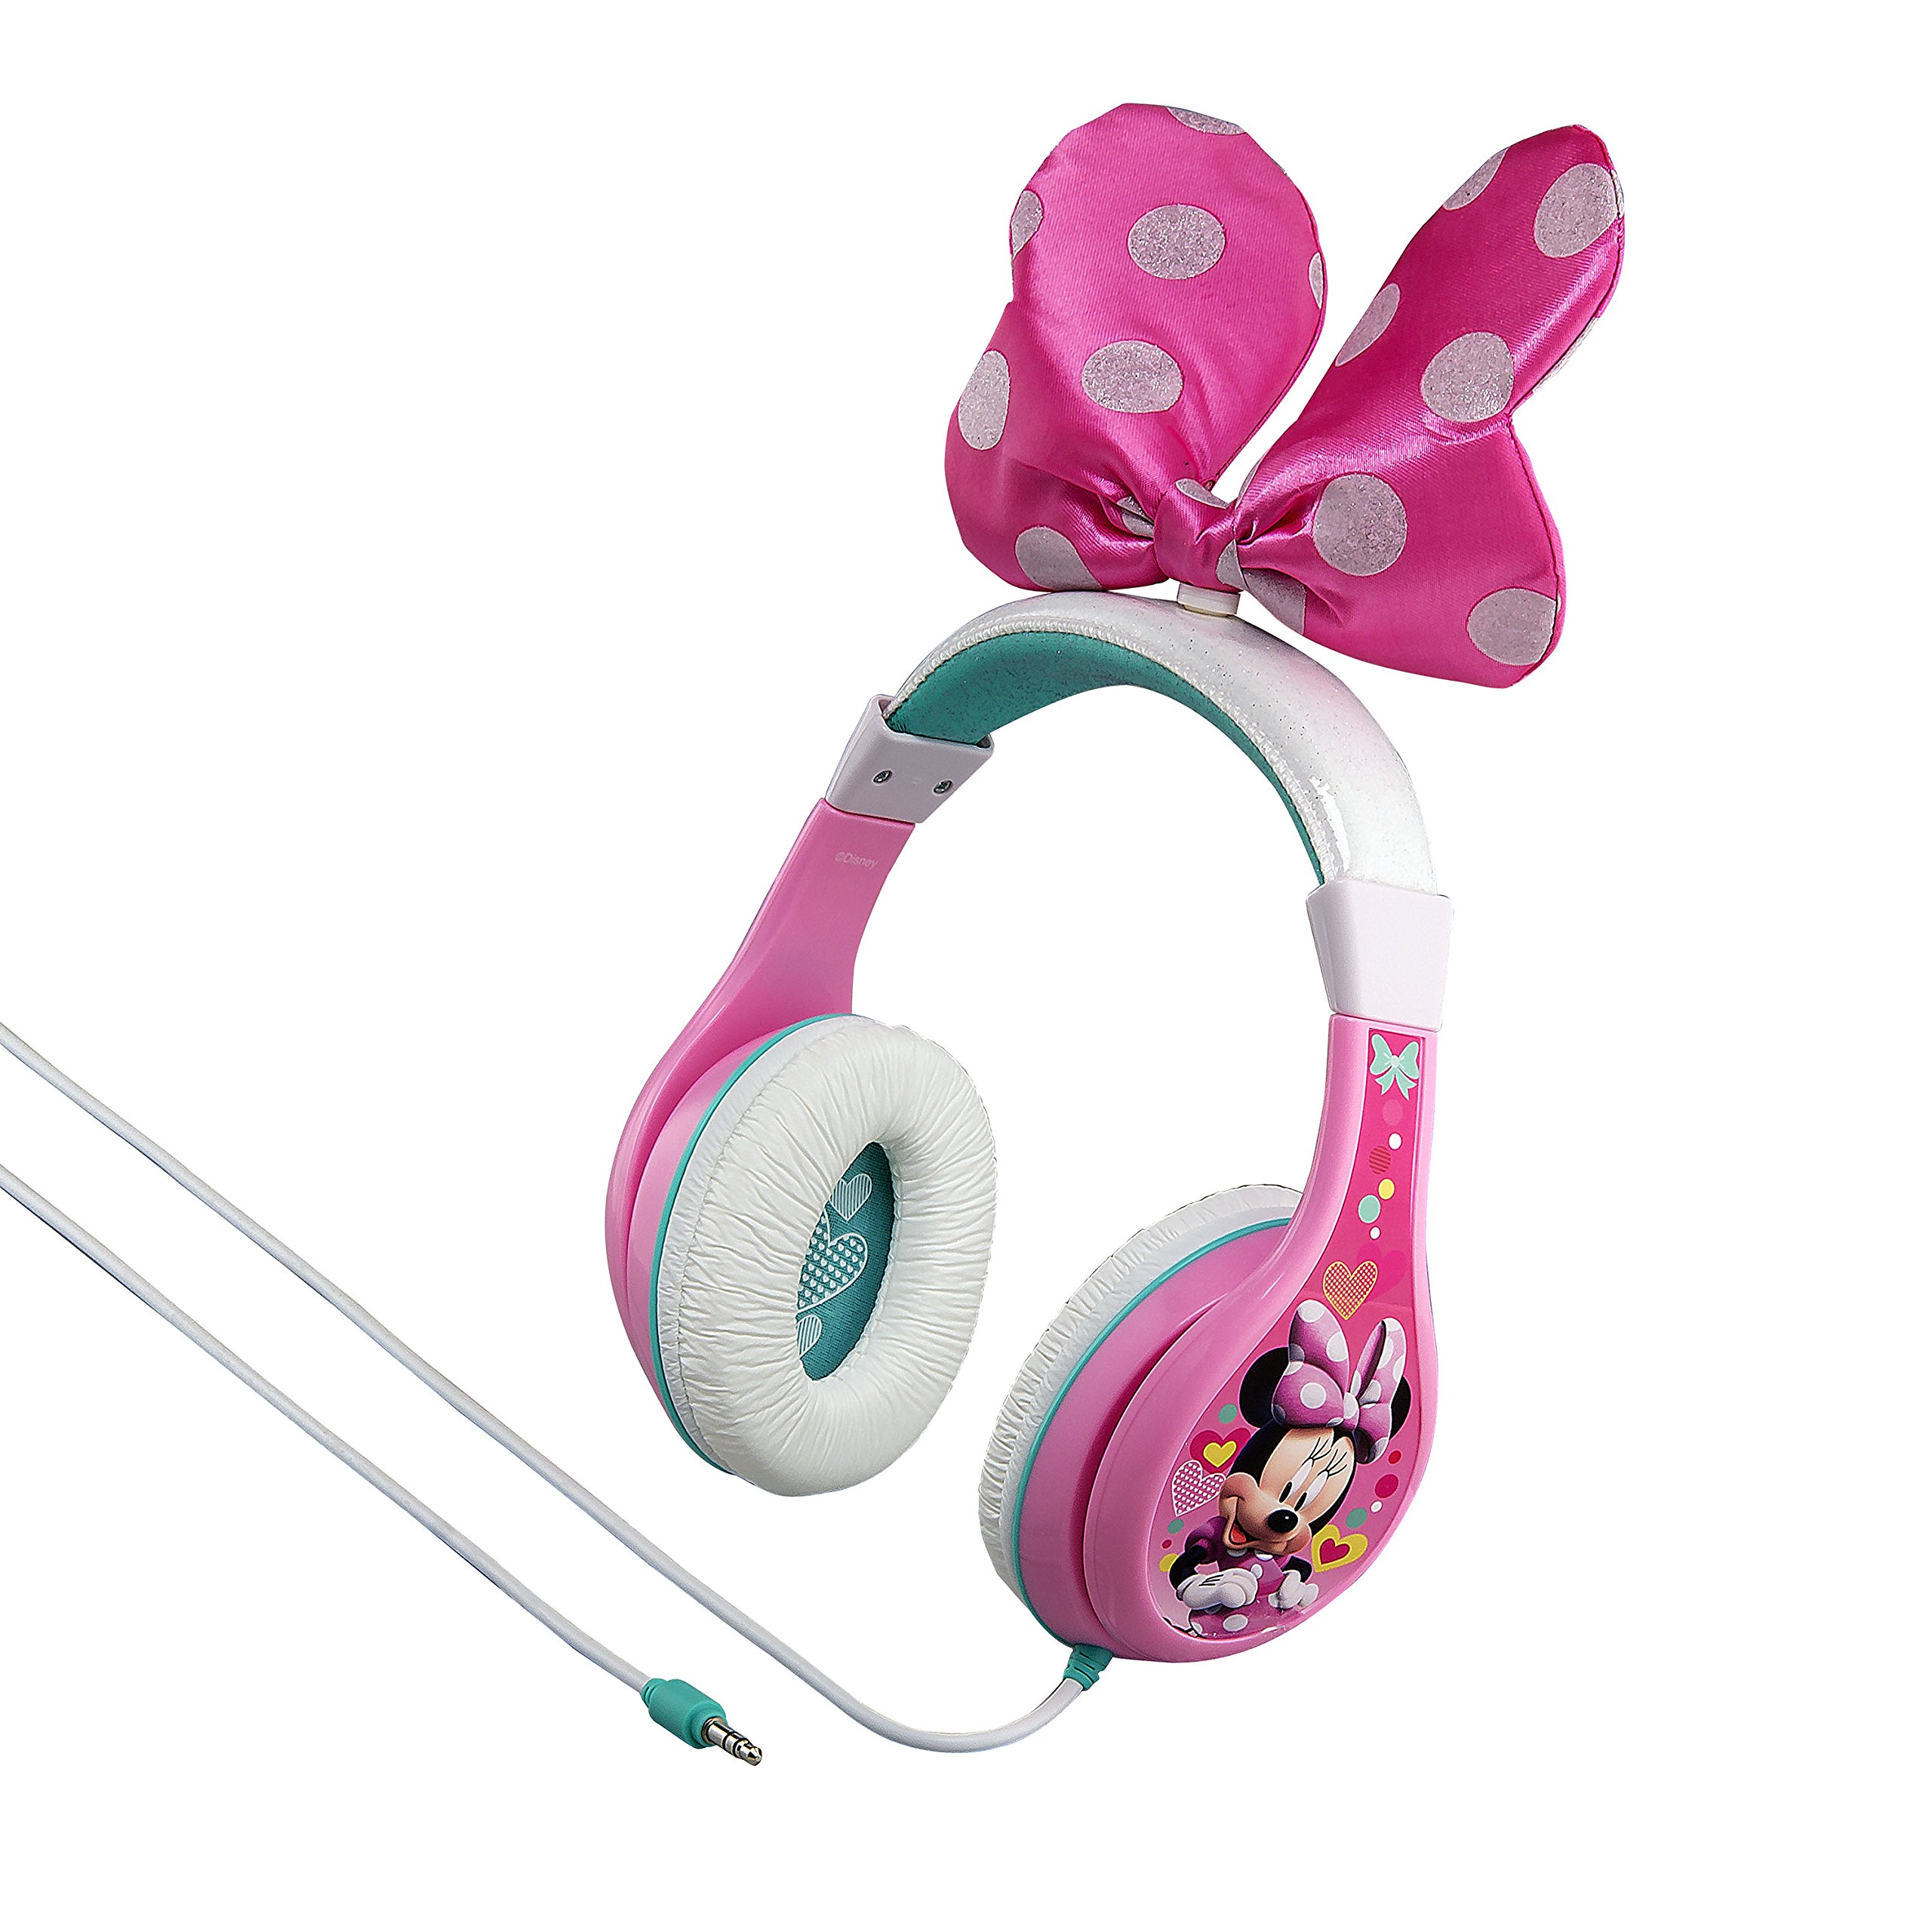 Minnie Mouse Headphones for Kids with Built in Volume Limiting Feature for Kid Friendly Safe Listening by eKids